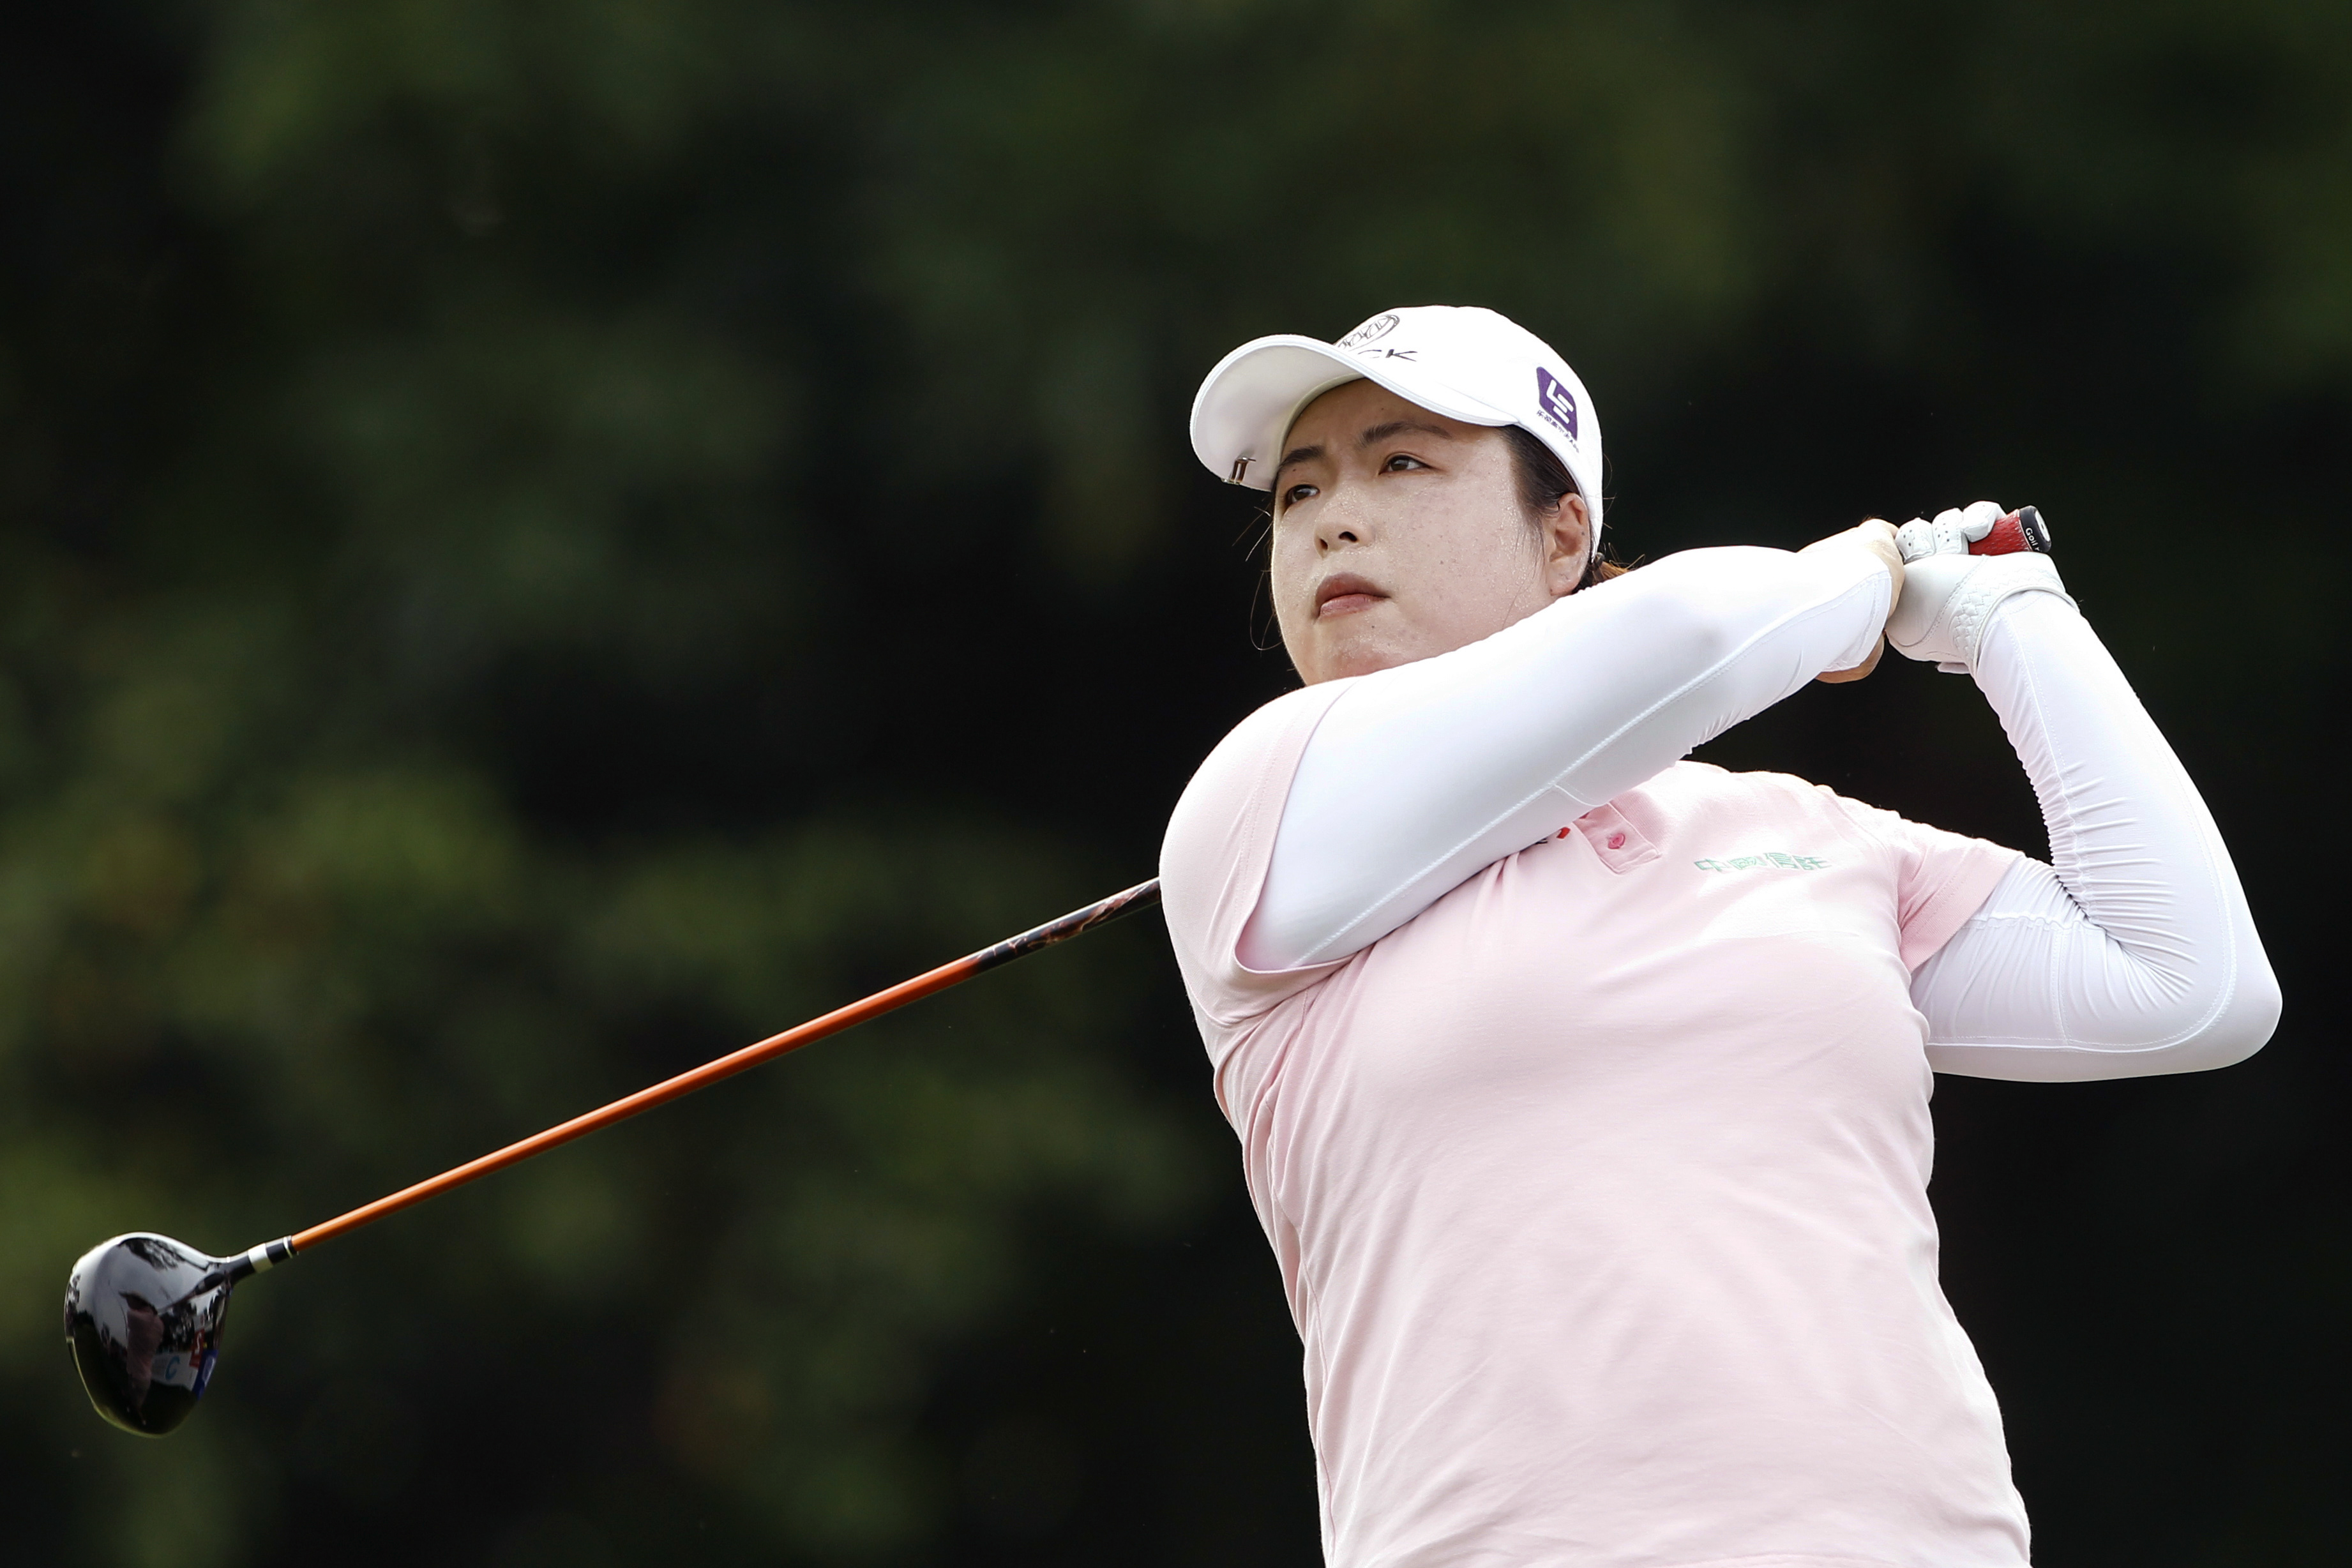 Shanshan Feng of China follows her shot during the third round of the Sime Darby LPGA.